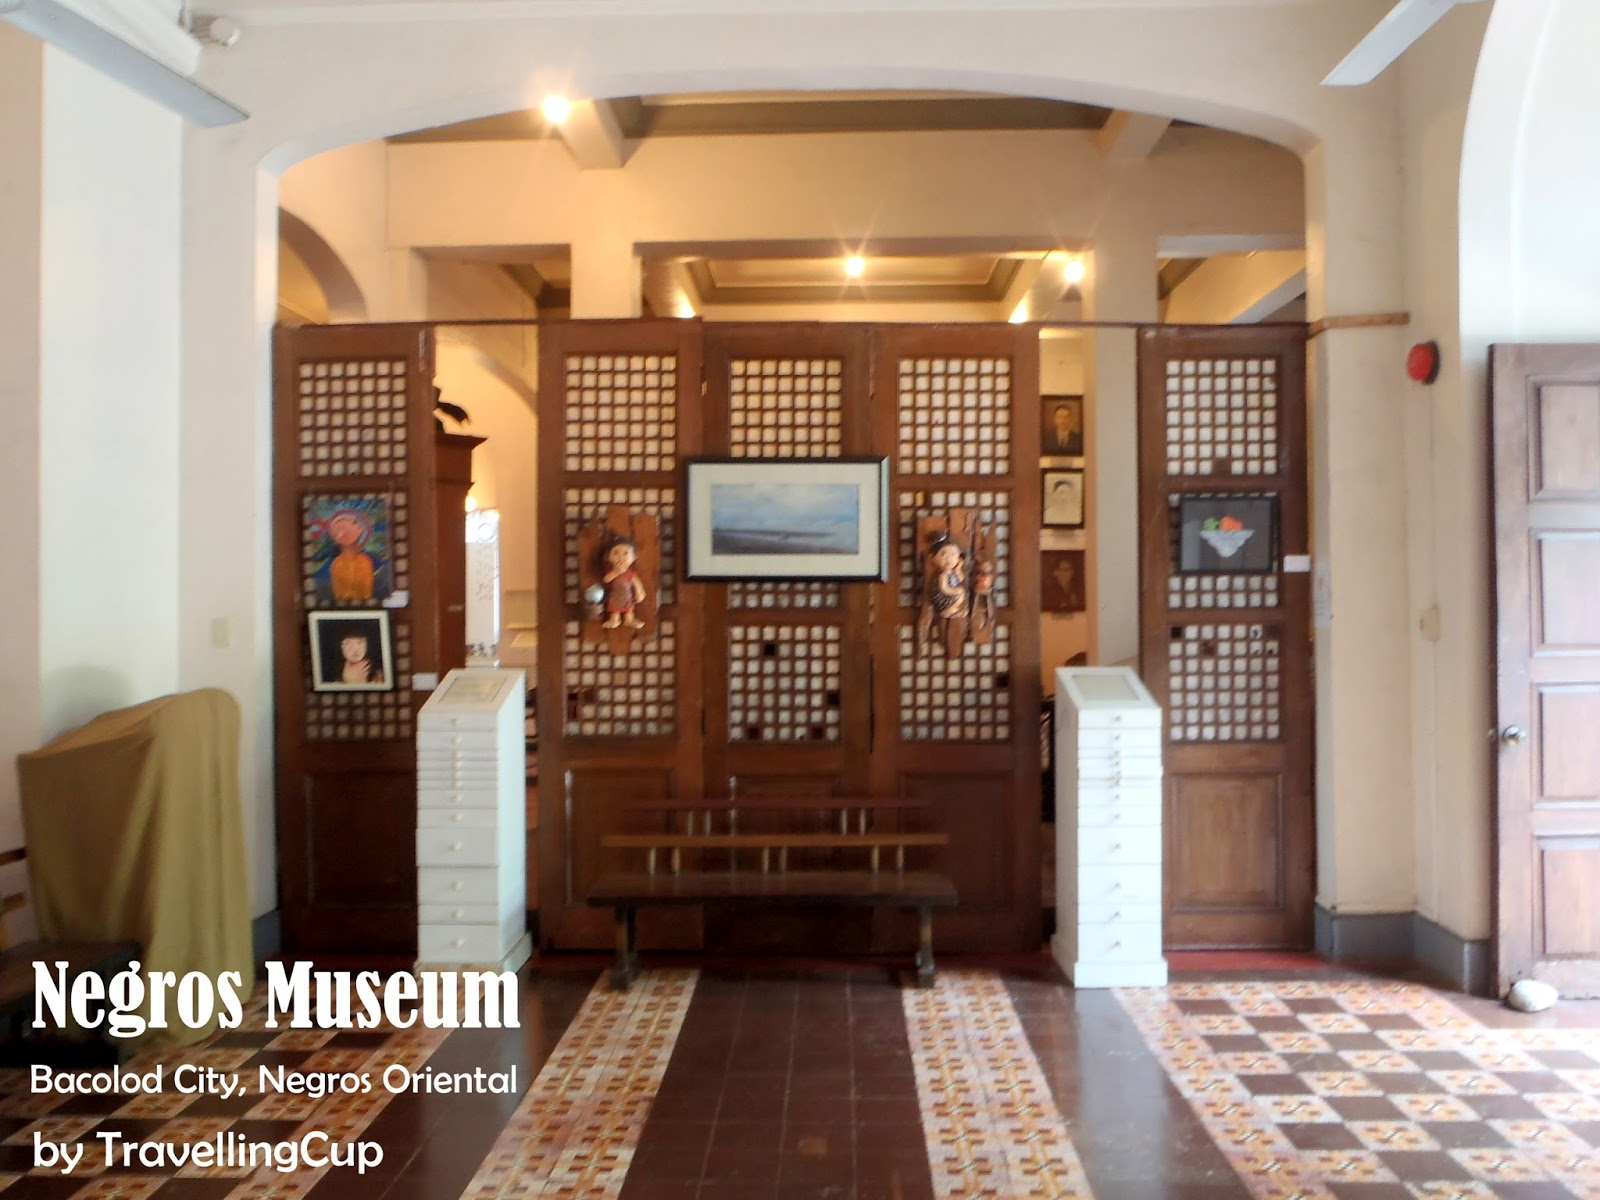 Negros Museum Bacolod, TravellingCup: Negros Museum | What to Visit in Bacolod